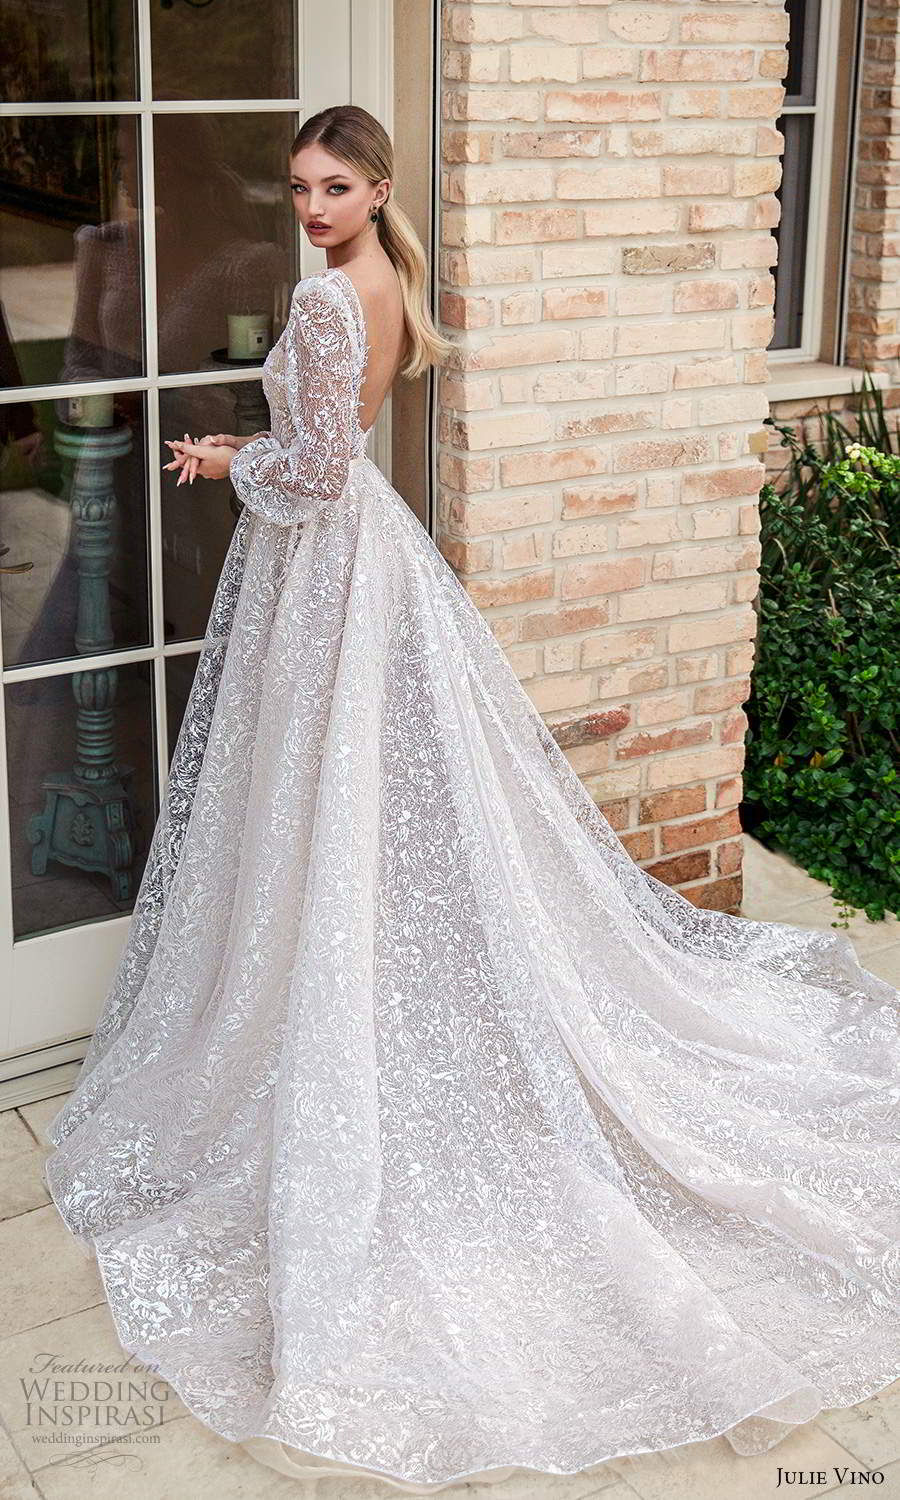 julie vino 2021 romanzo bridal long puff sleeves plunging v necklinen fully embellished a line ball gown wedidng dress chapel train (1) bv